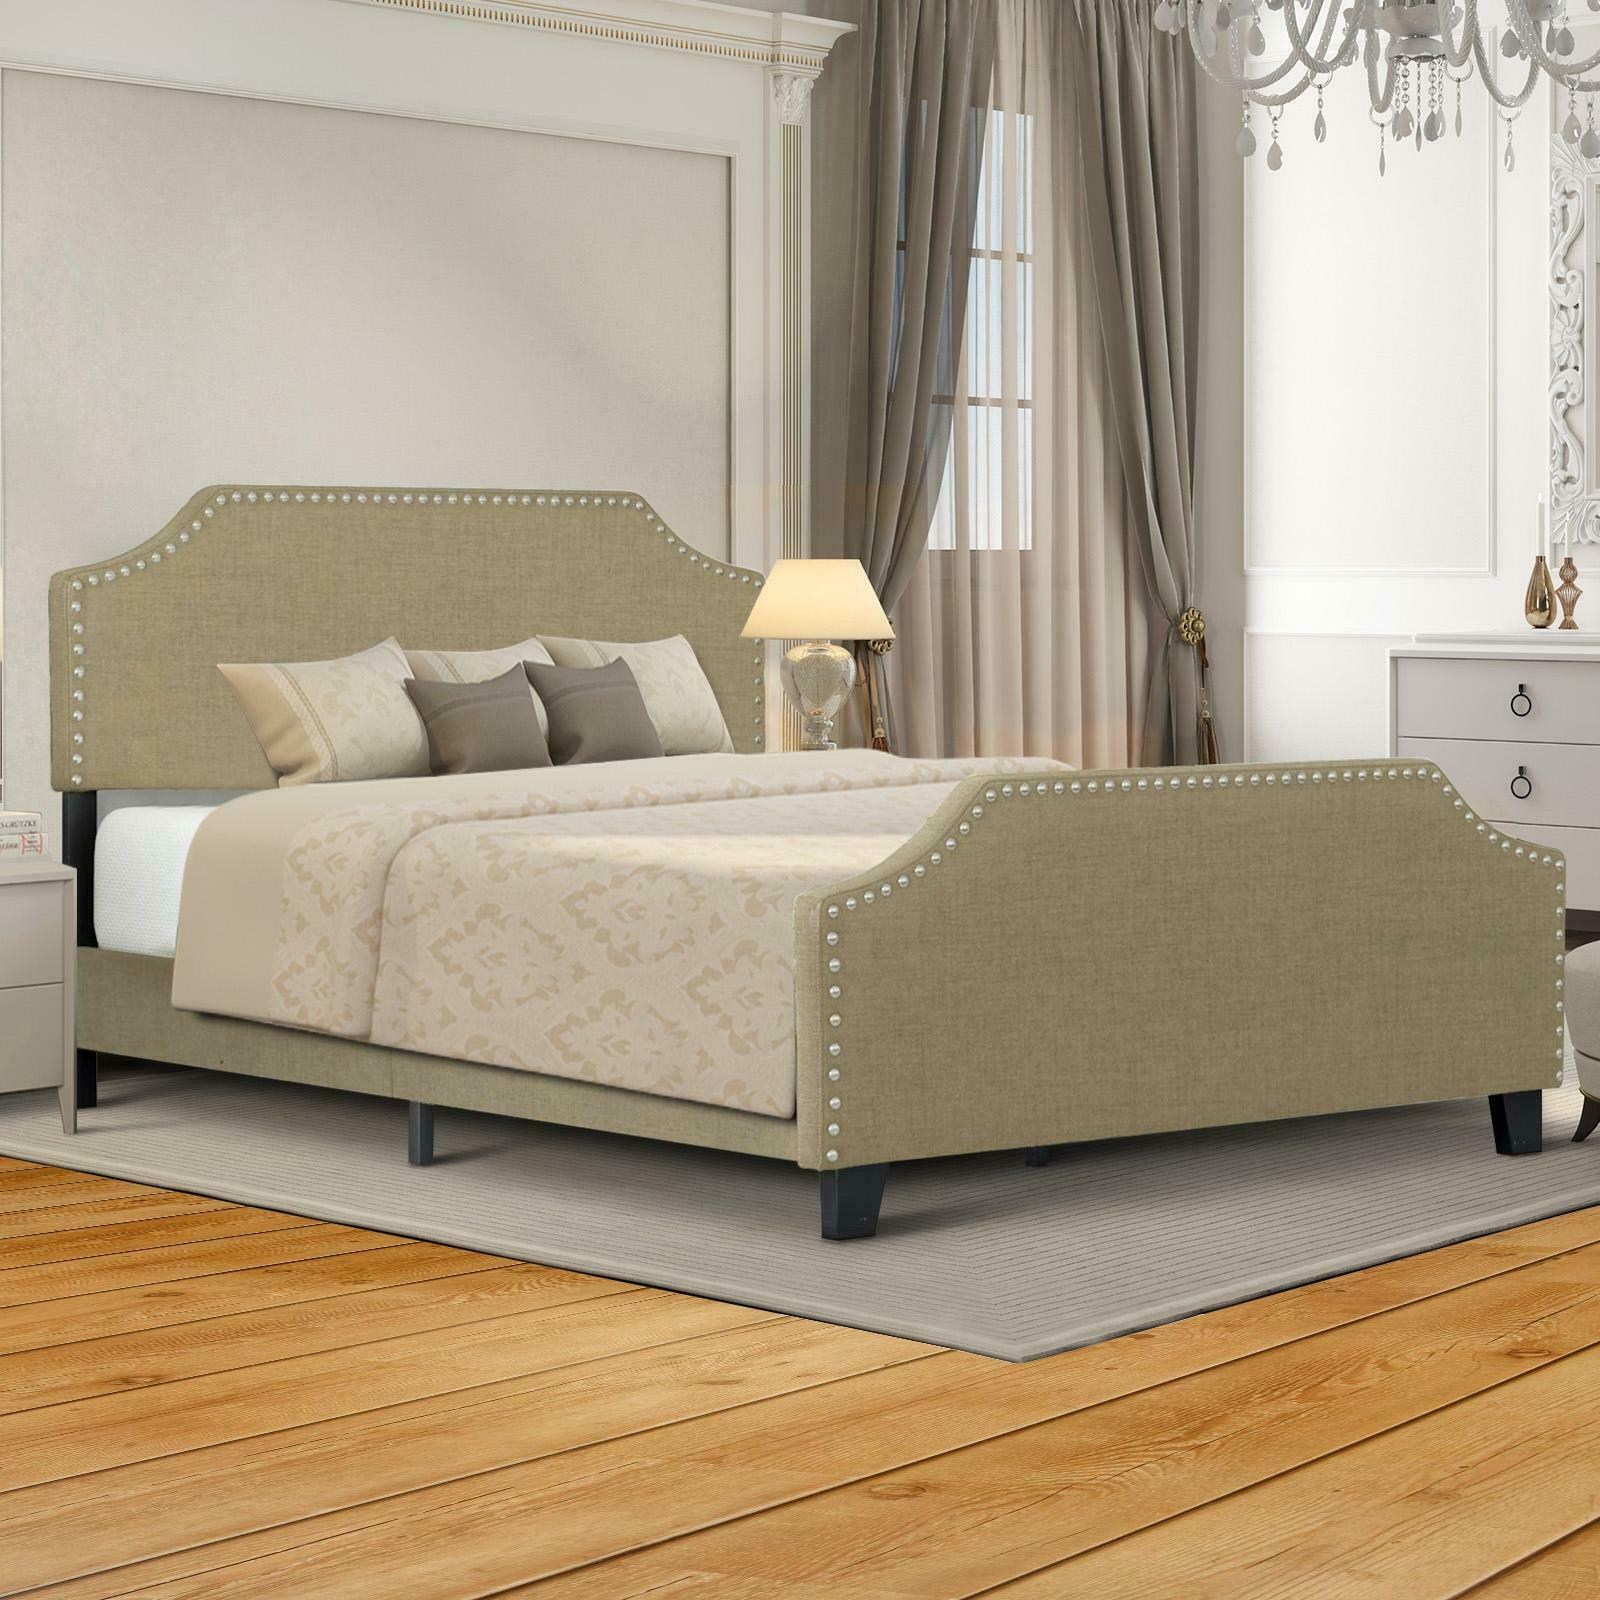 Twin/Full/Queen Size Bed Frame Platform With Headboard Footb